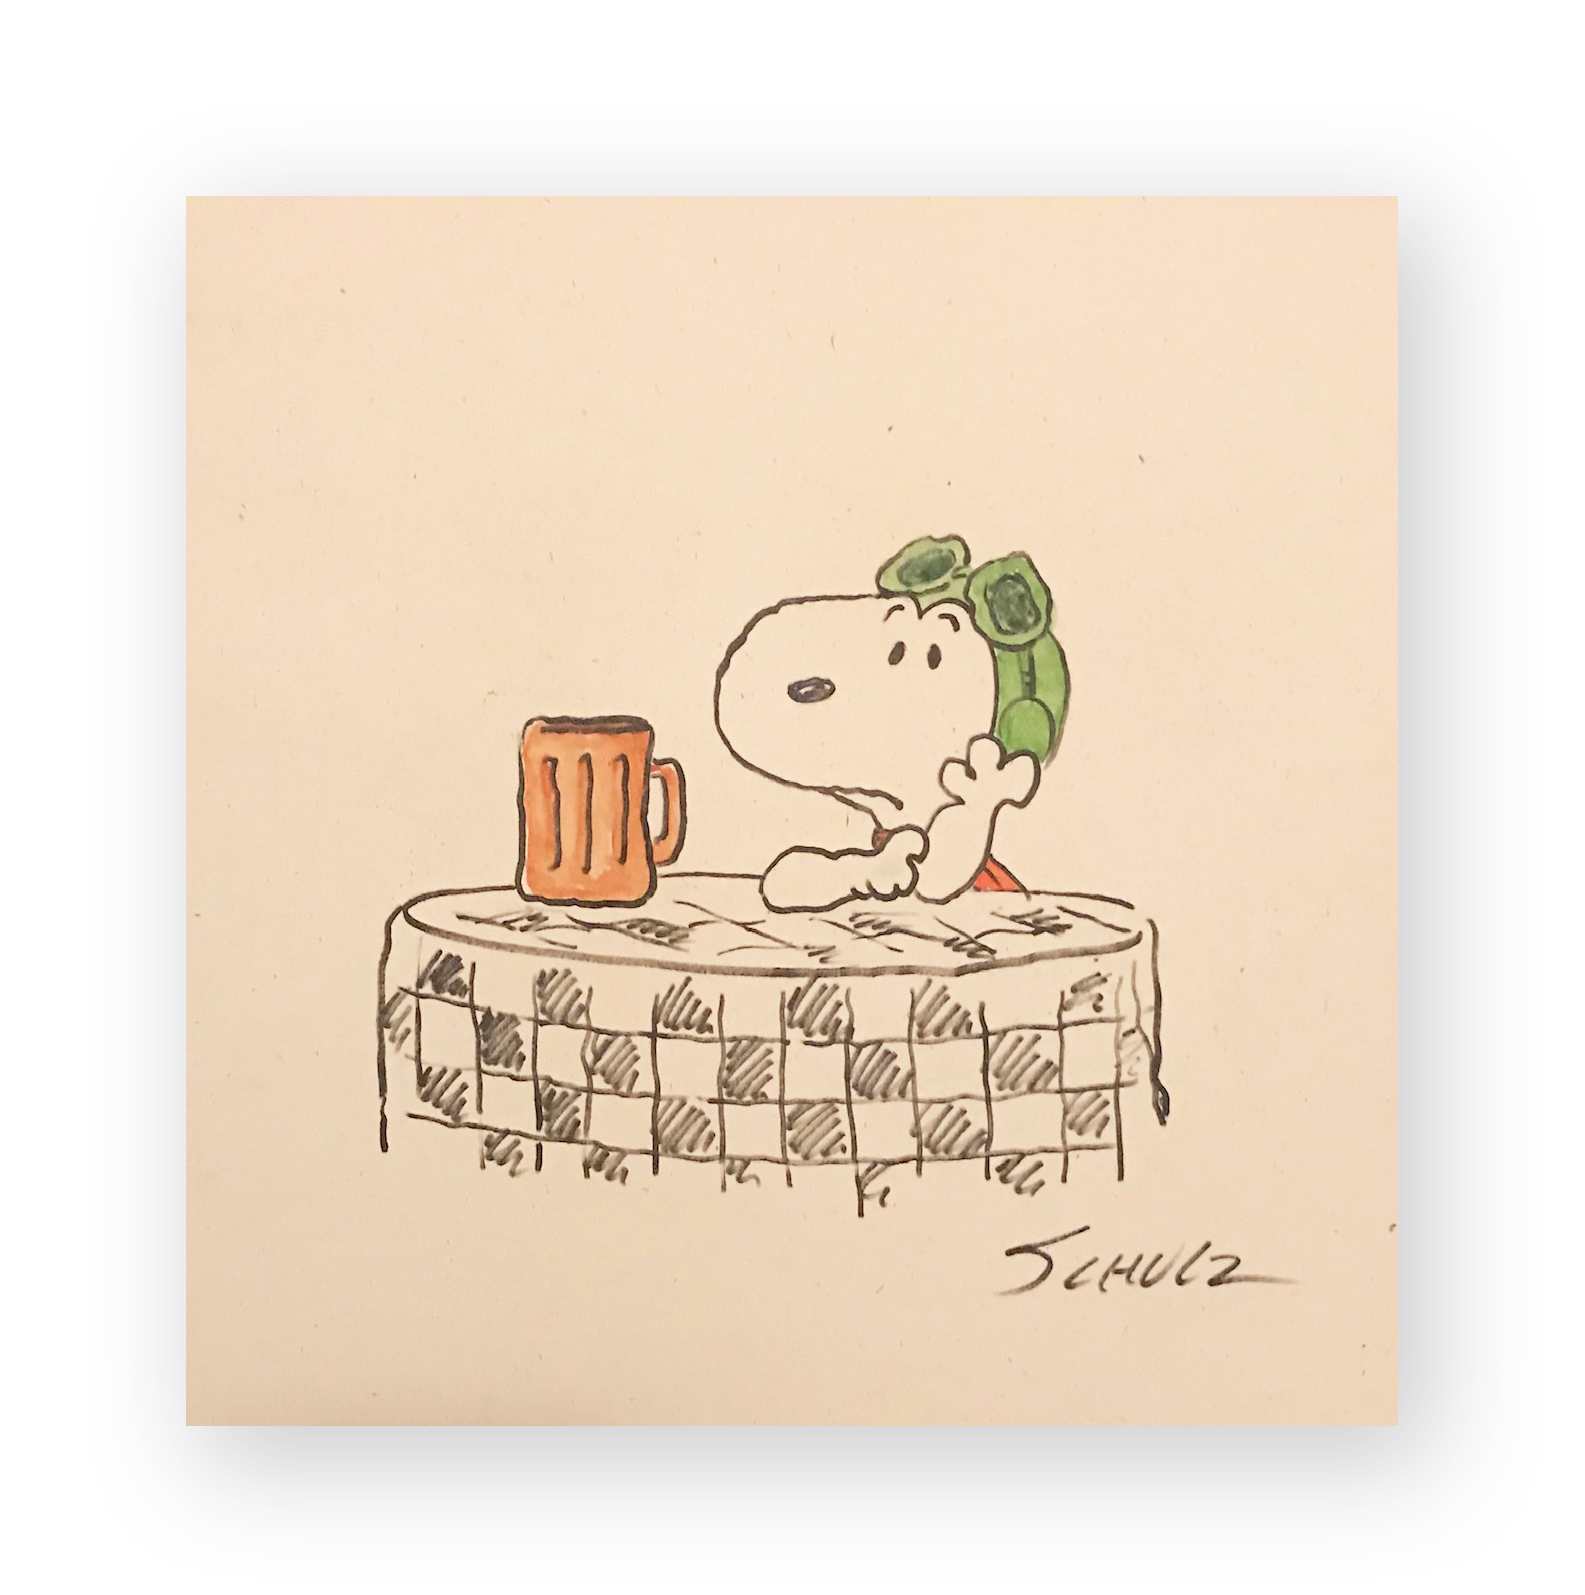 "Charles Schulz  ""Between Missions""  Snoopy (Flying Ace Root beer)  Mixed media illustration on thick stock paper  11.5 x 12 inches  Circa 1970's  *Ted Long Collection"